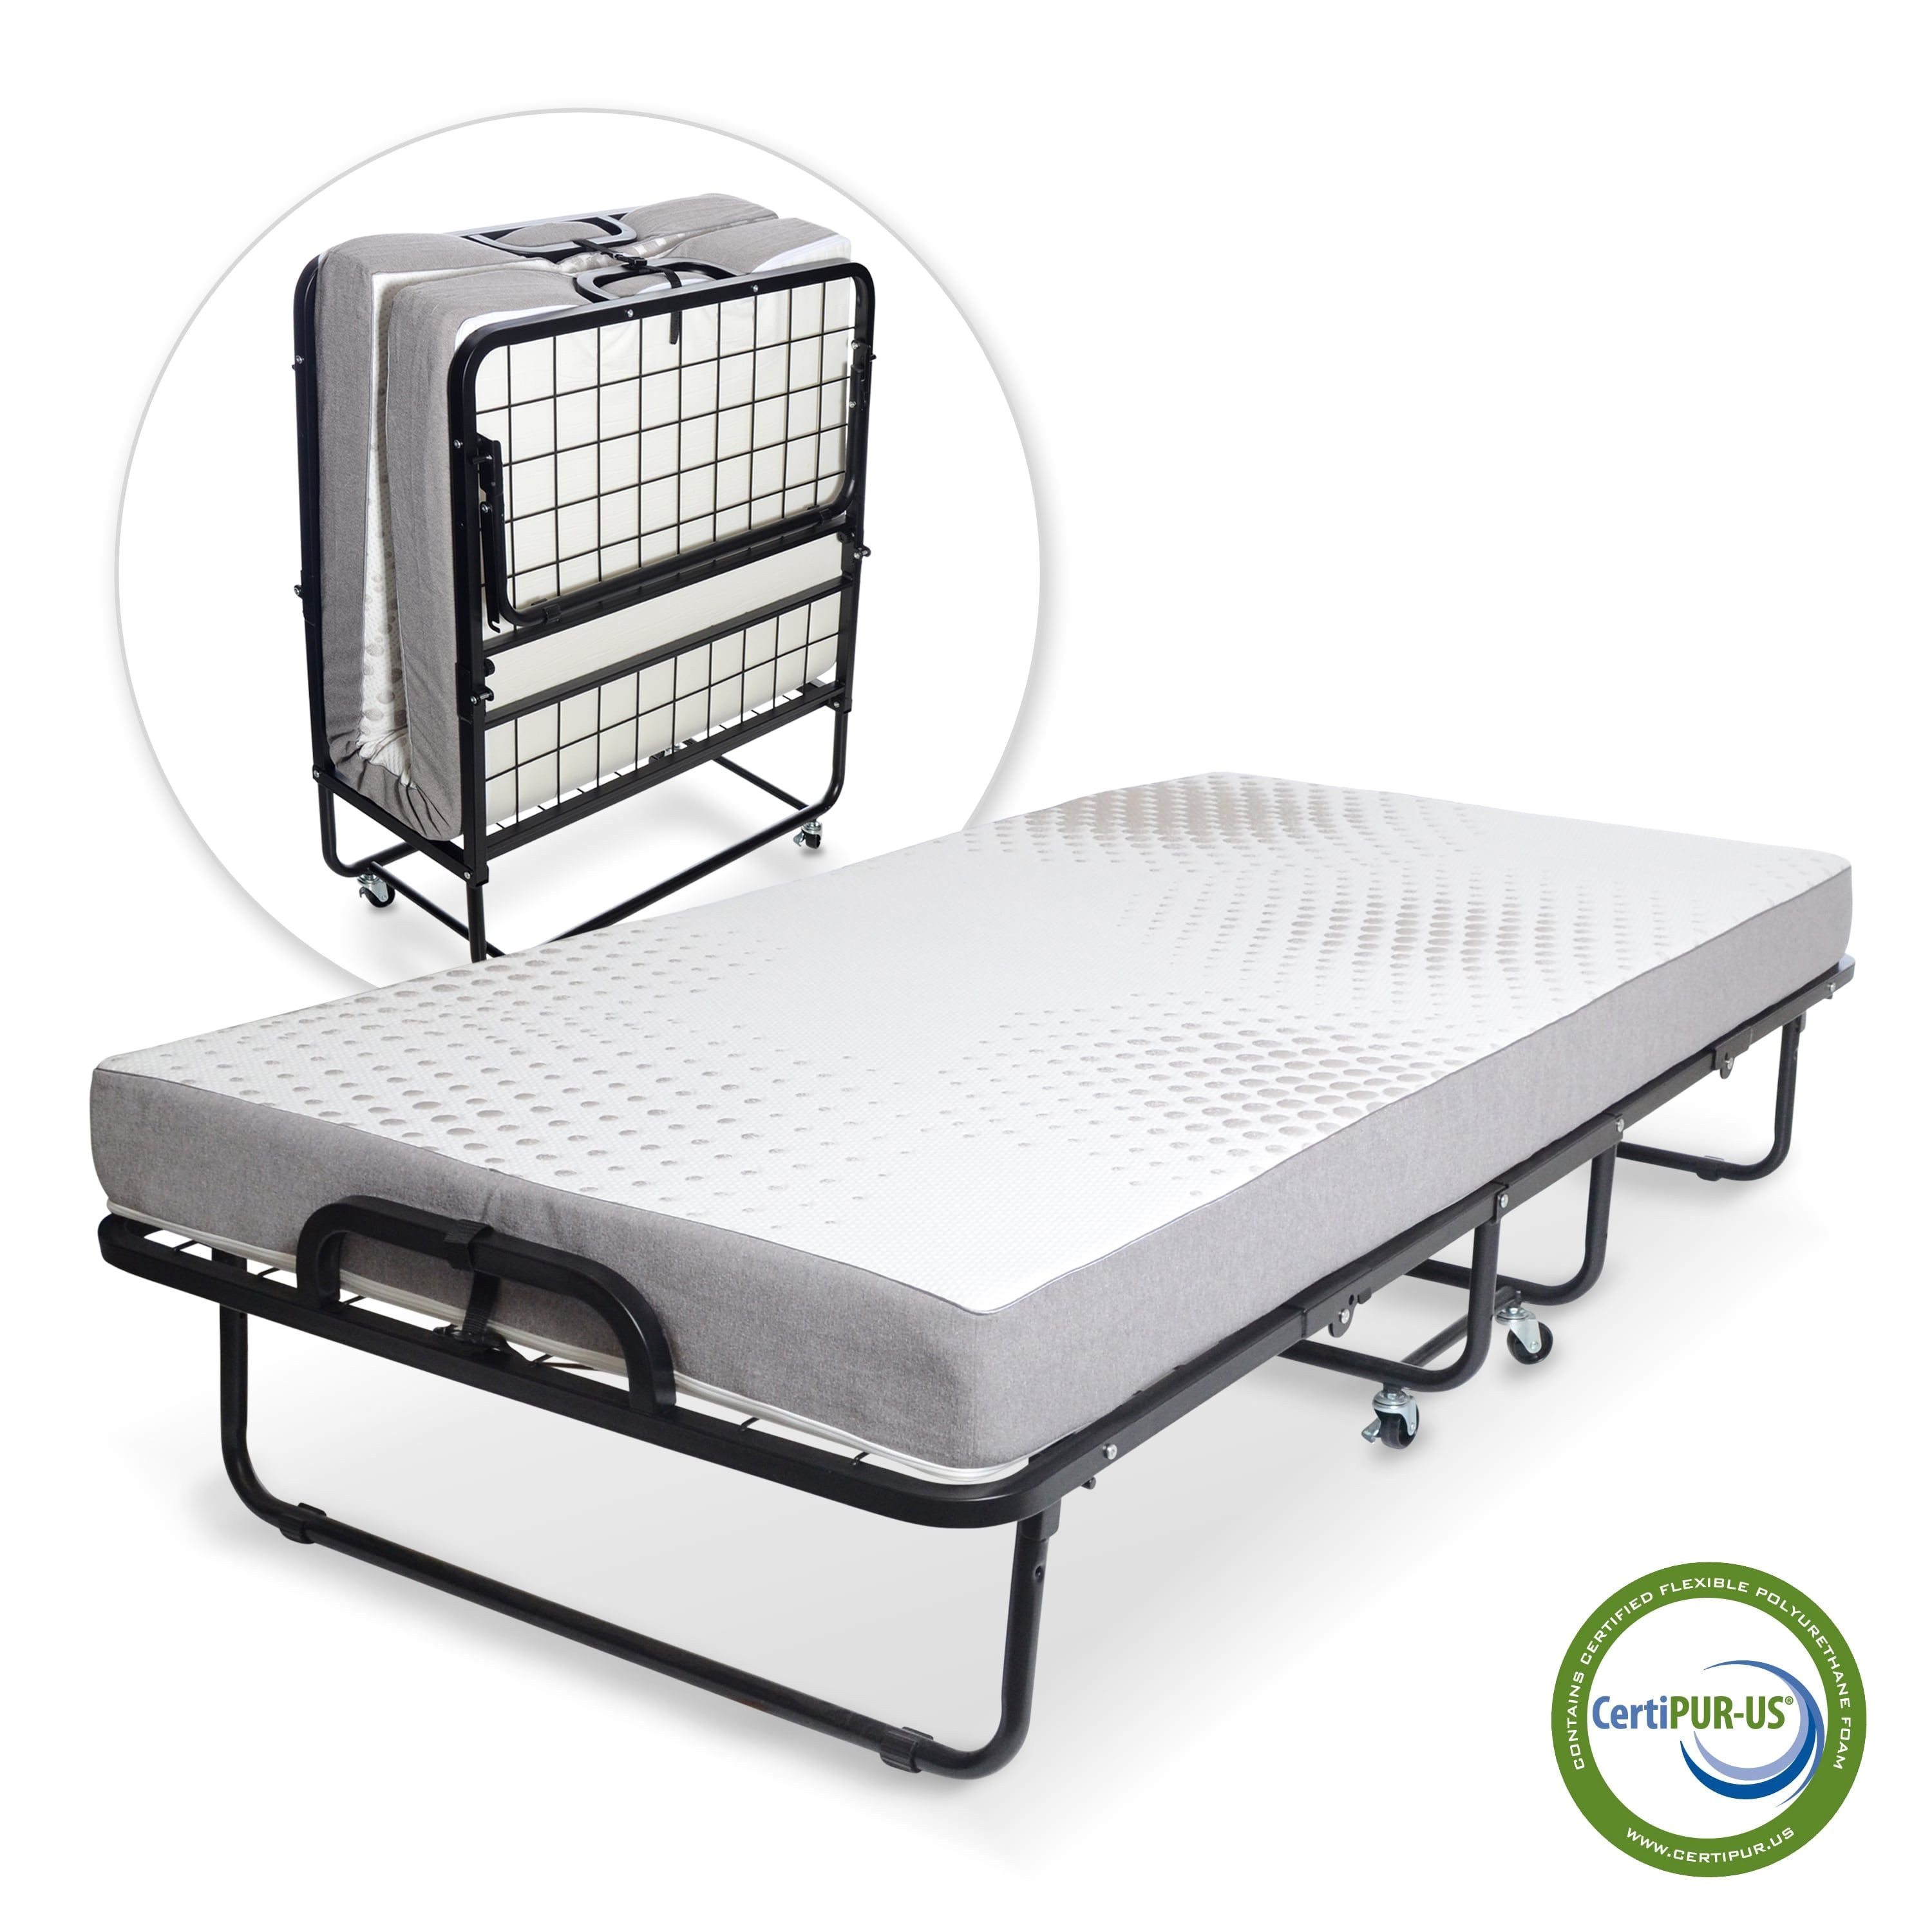 Big Lots Rollaway Folding Bed Milliard Diplomat Folding Bed Twin Size with Luxurious Memory Foam